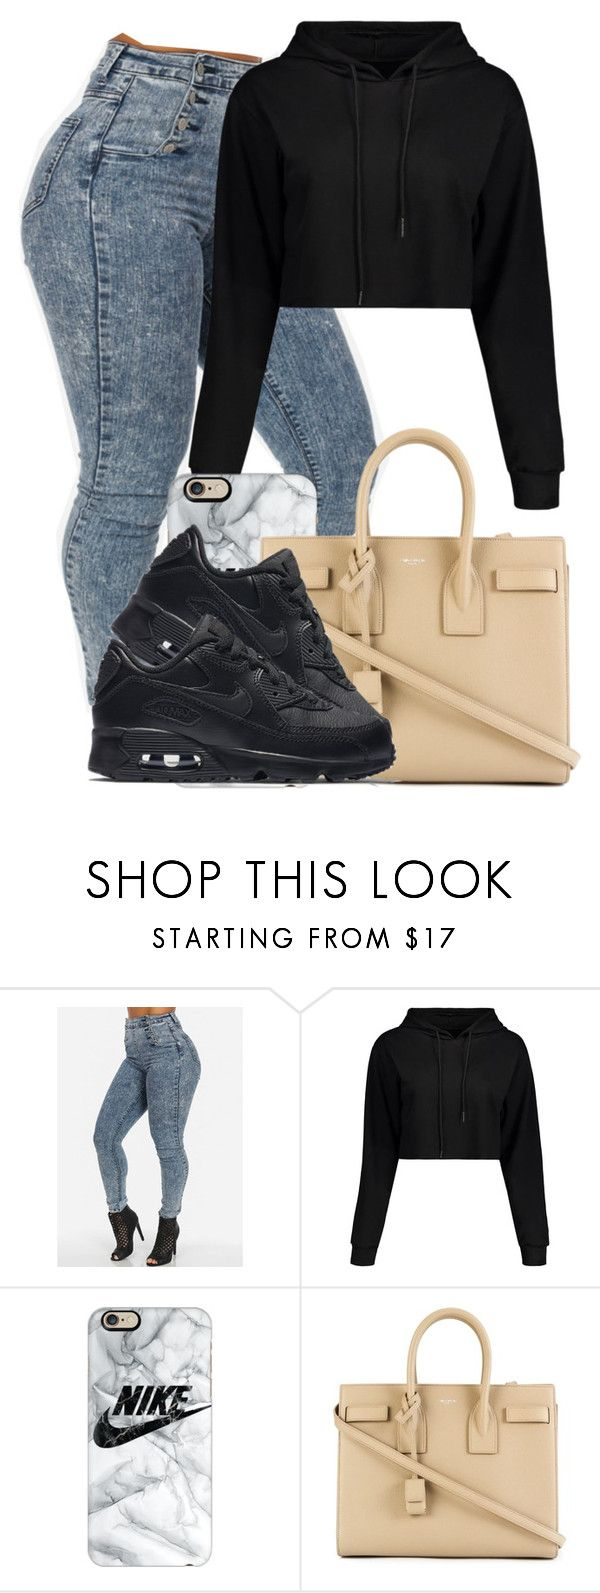 """""""Nike Noir"""" by danimack03 ❤ liked on Polyvore featuring Casetify, Yves Saint Laurent and NIKE"""